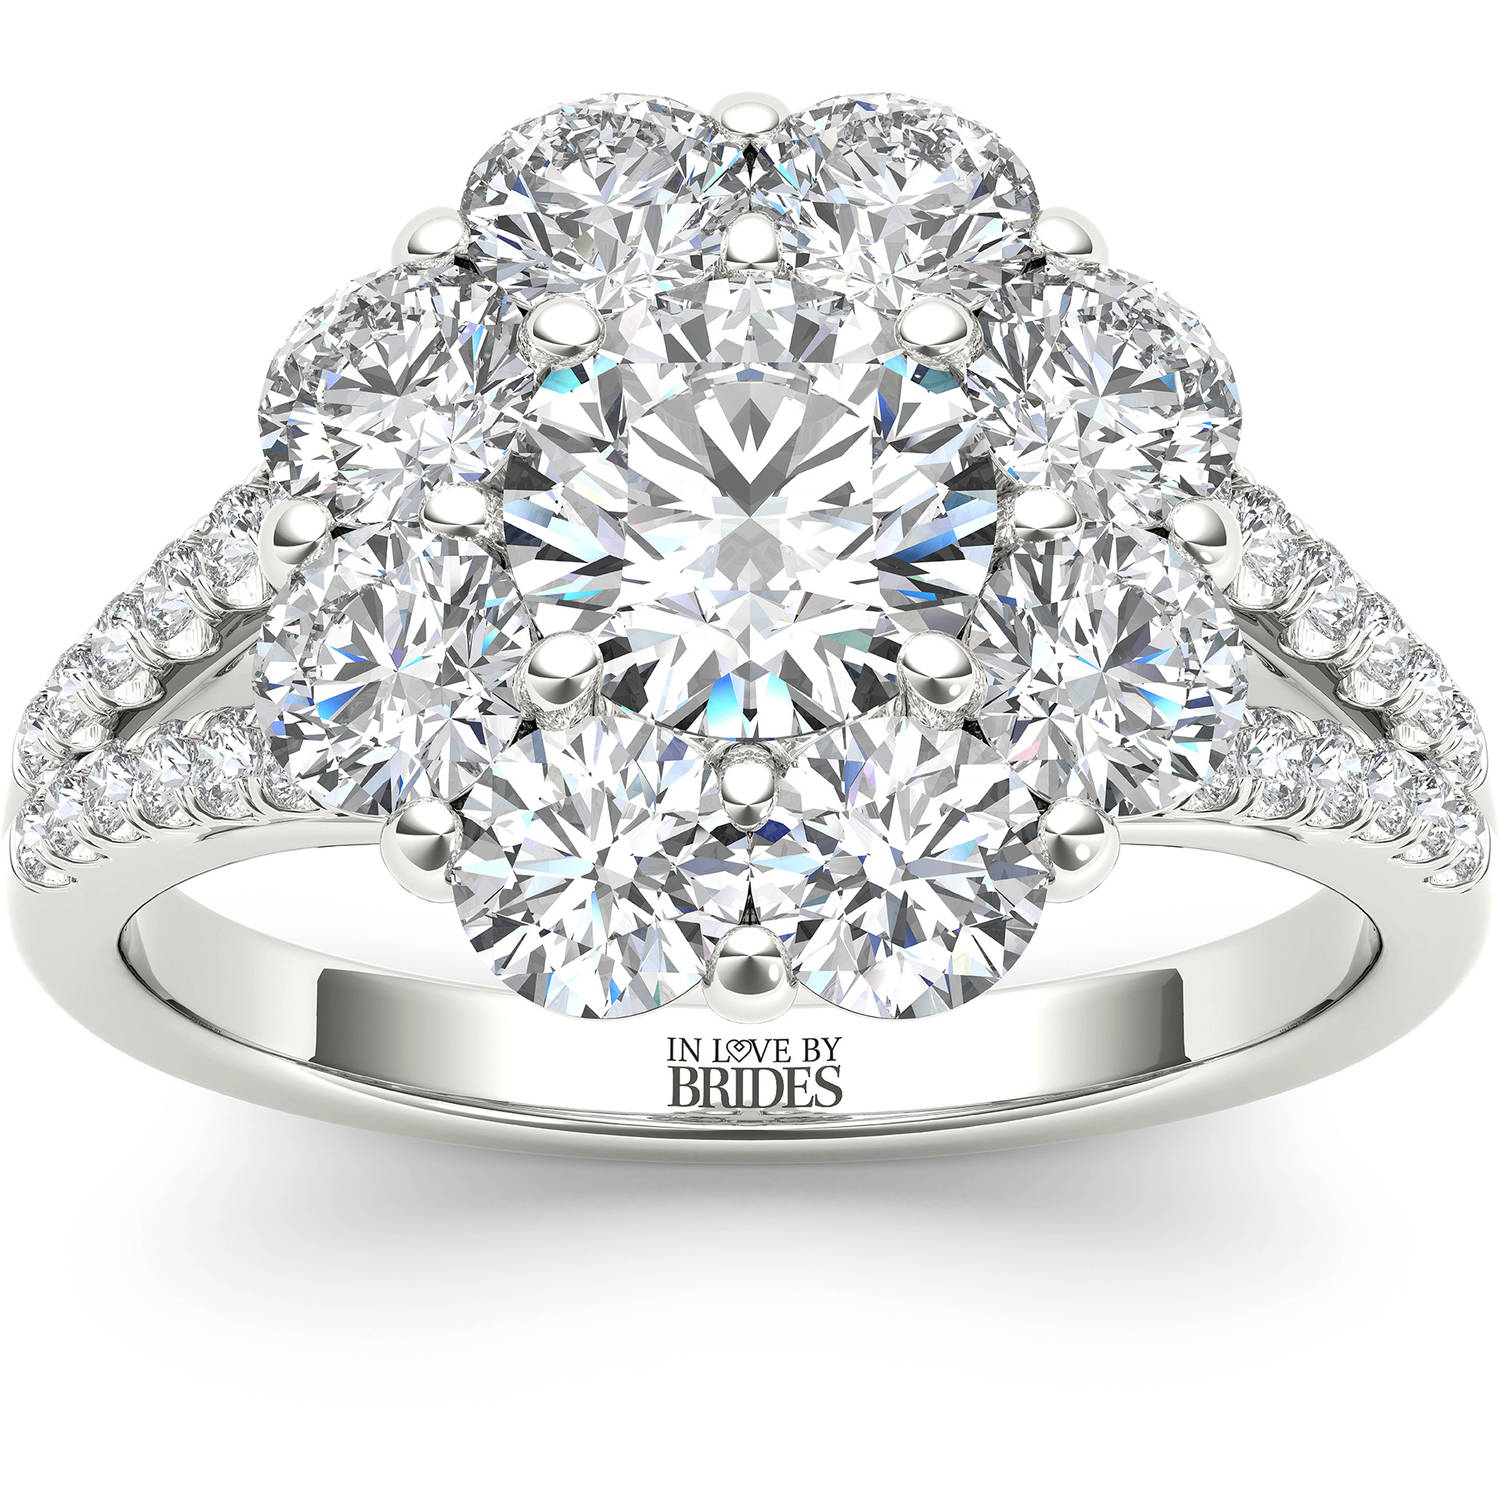 In Love By Brides In Love By Brides 2 Carat Tw Certified Flower